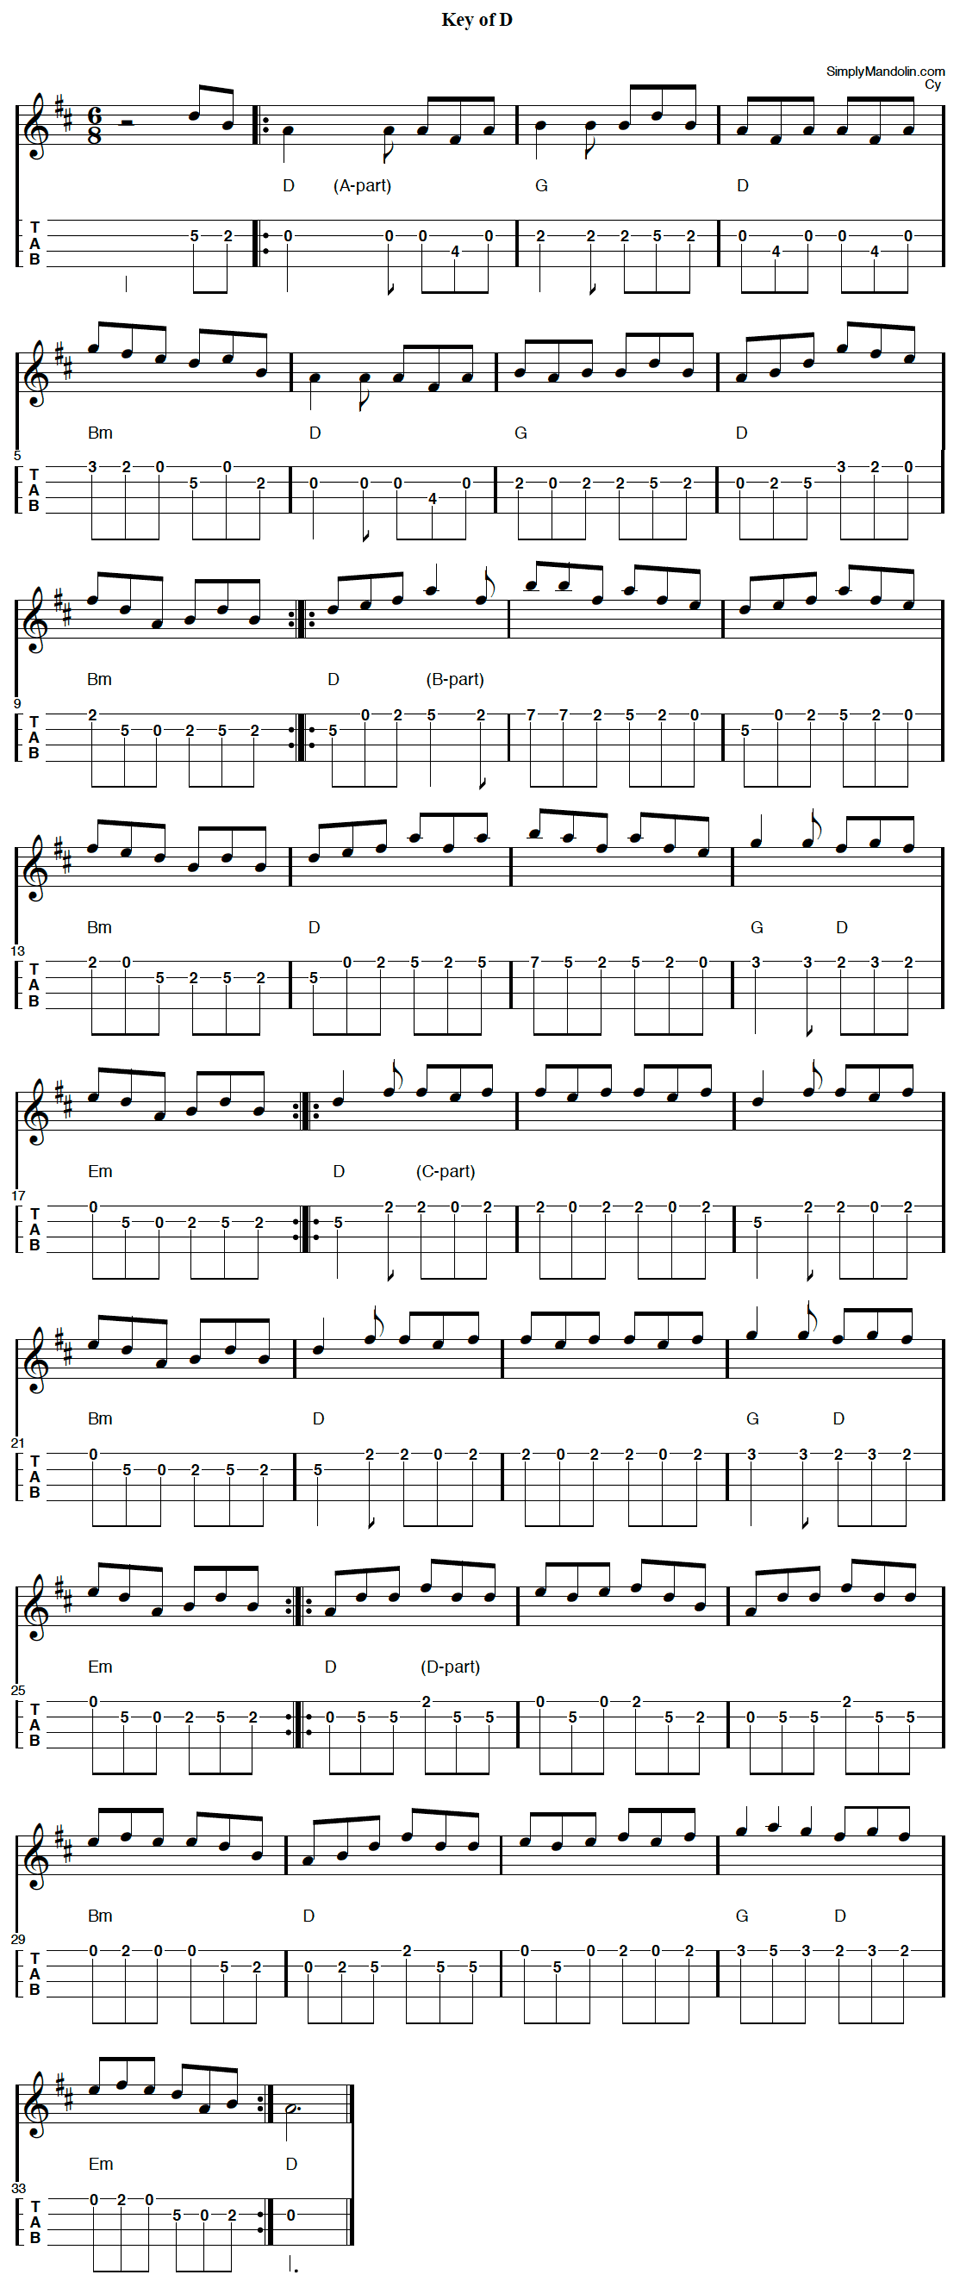 image of tablature for the irish tune lark in the morning